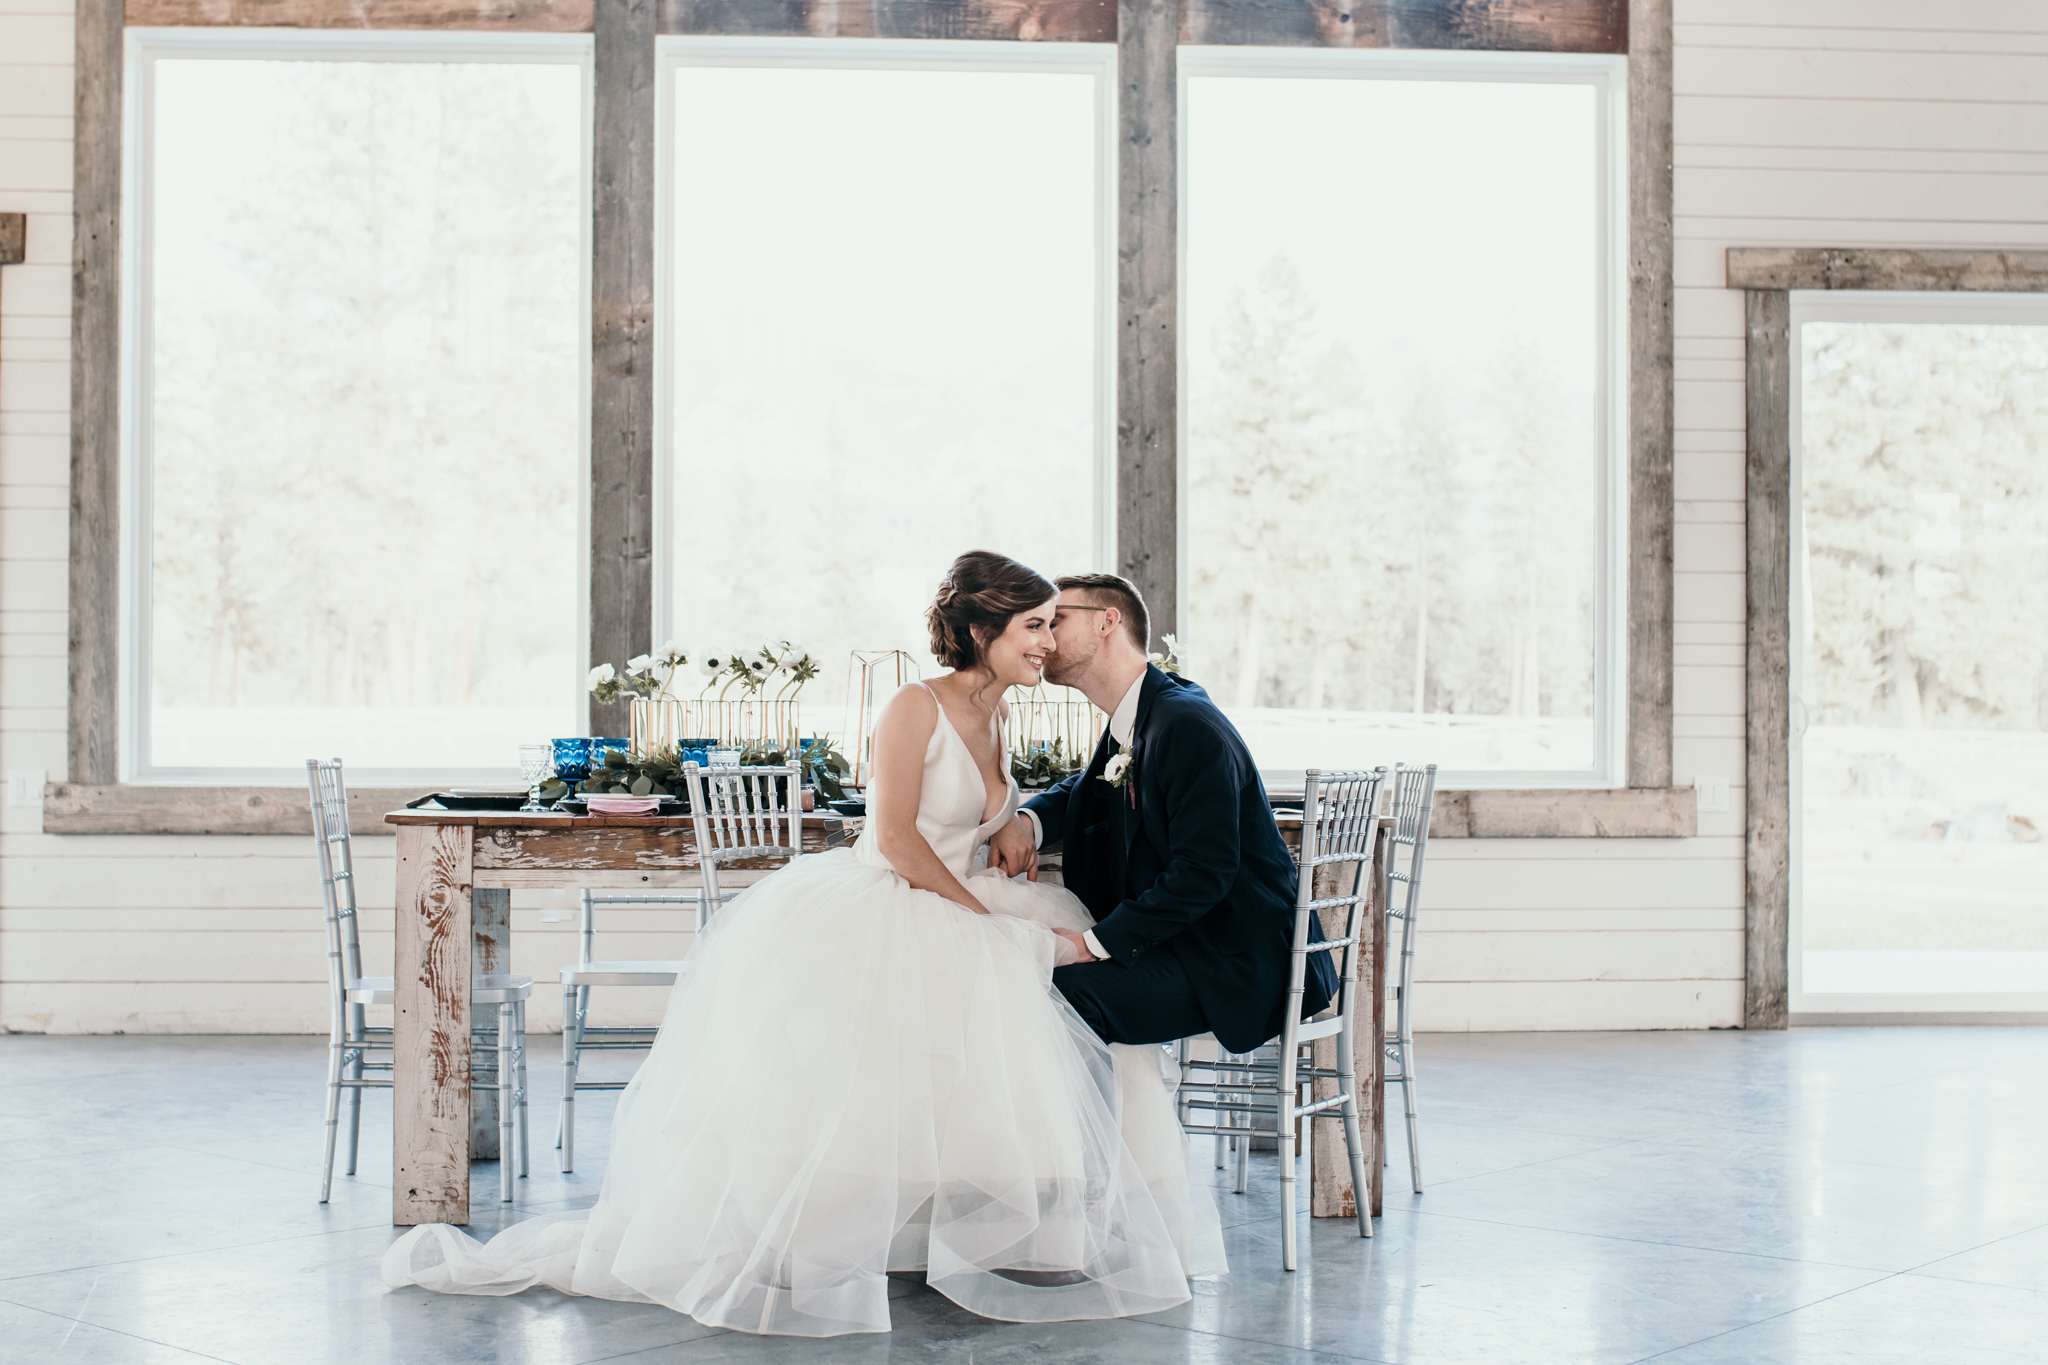 065 Jewel Tone Wedding Styled Shoot_Silver Knot_Montana Wedding Planner_Montana Wedding Photographer_Montana Wedding Videography_Honeybee Weddings-0745.jpg